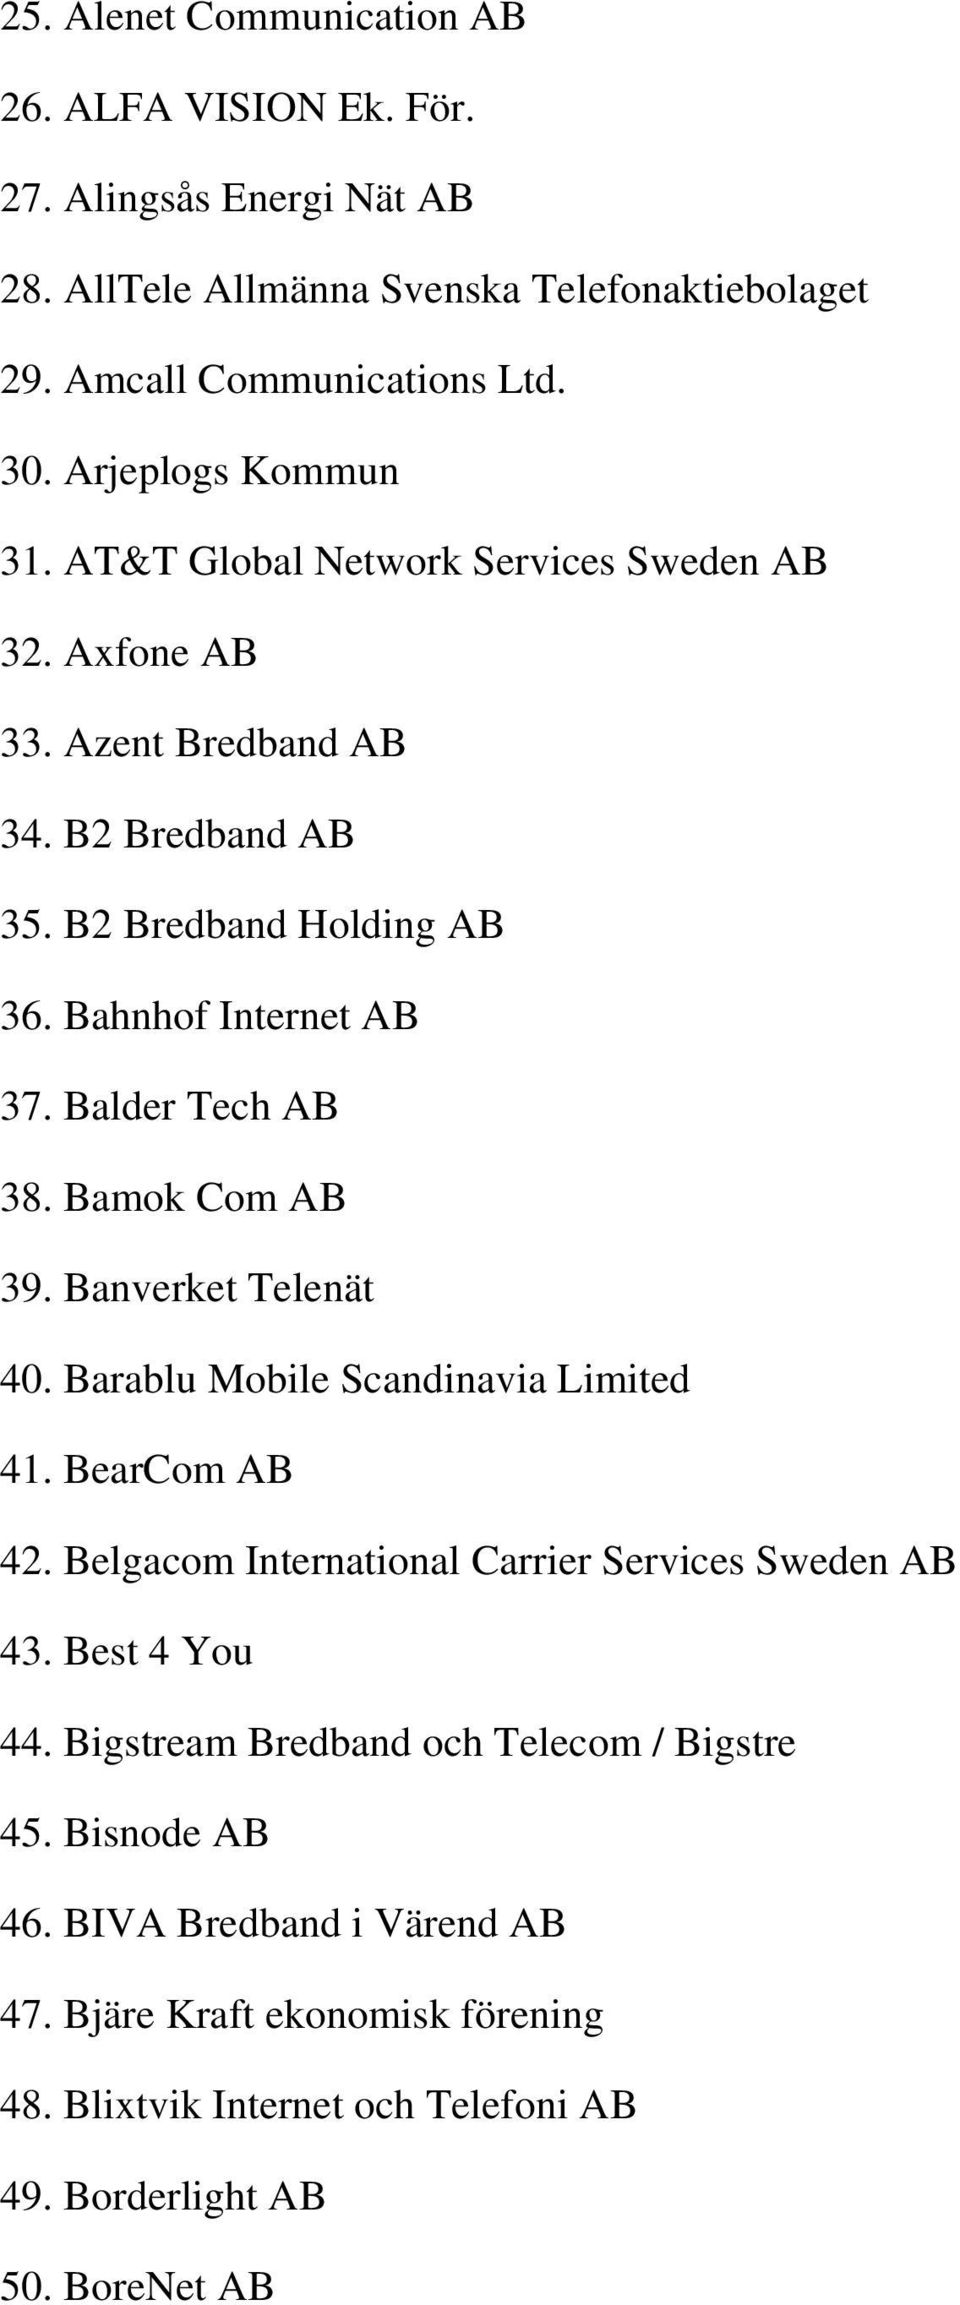 Balder Tech AB 38. Bamok Com AB 39. Banverket Telenät 40. Barablu Mobile Scandinavia Limited 41. BearCom AB 42. Belgacom International Carrier Services Sweden AB 43.